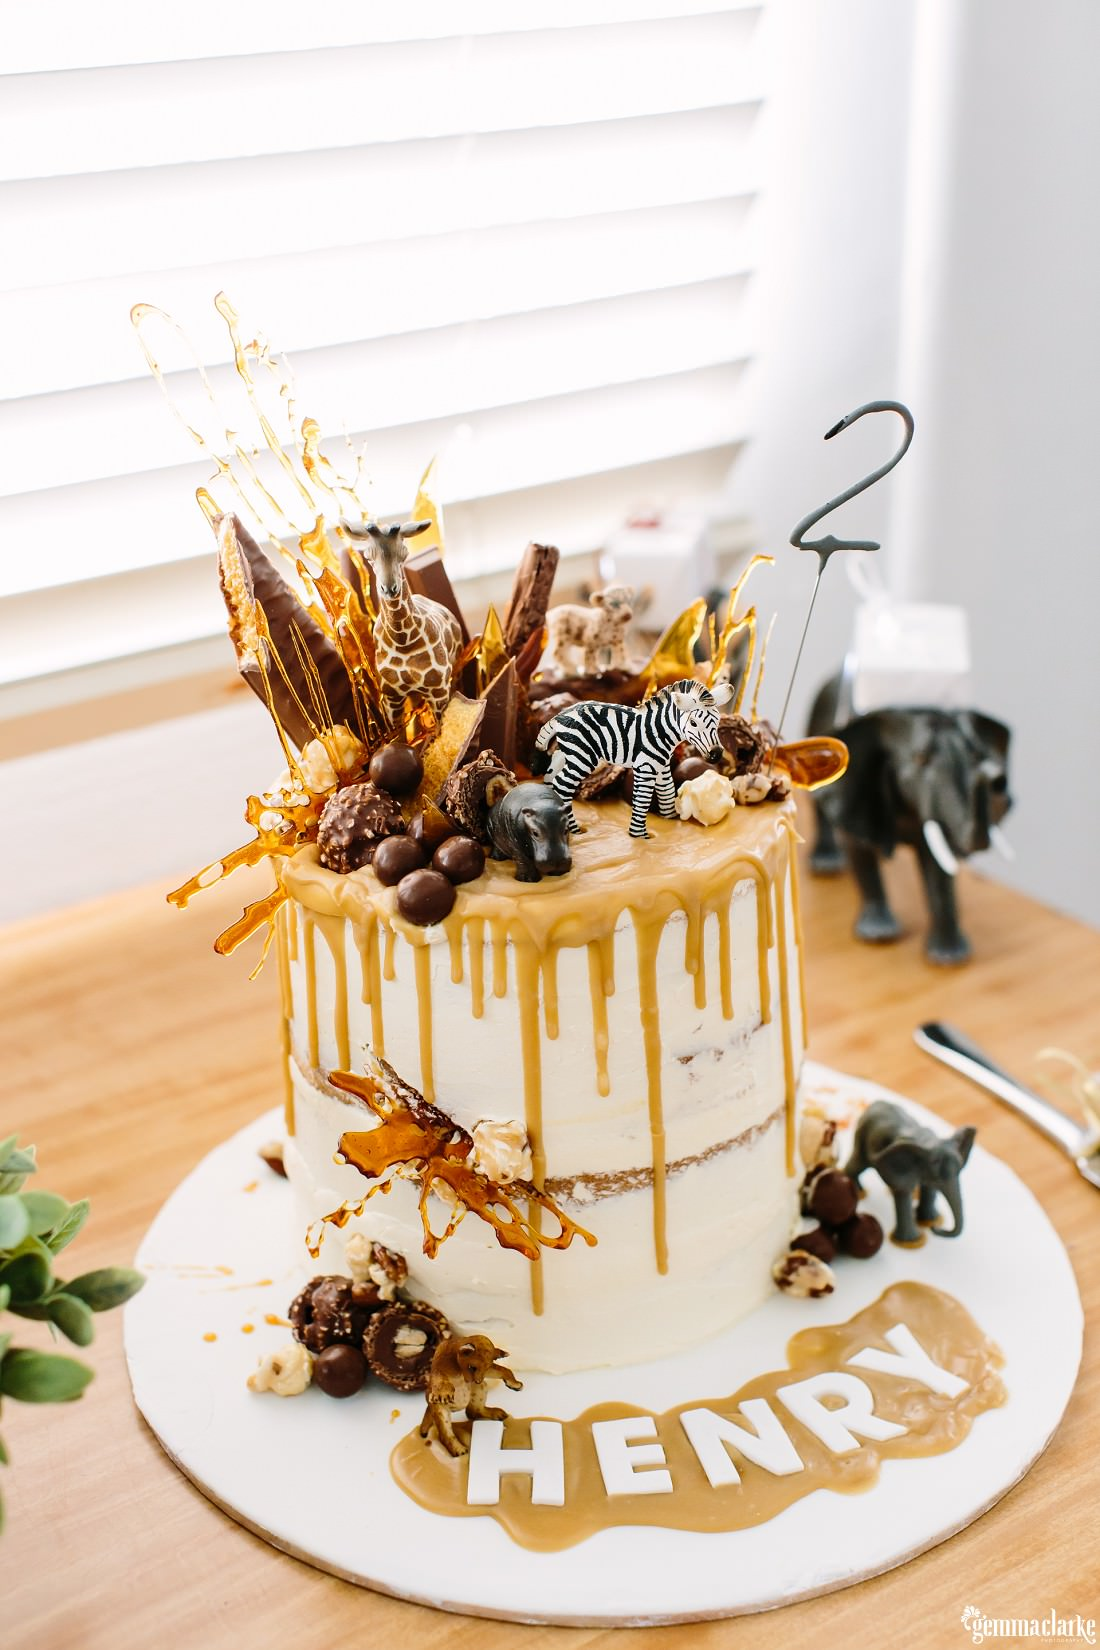 Amazing Naked Cake With Caramel Dripping From The Top And Covered In Chocolate Bars Toy